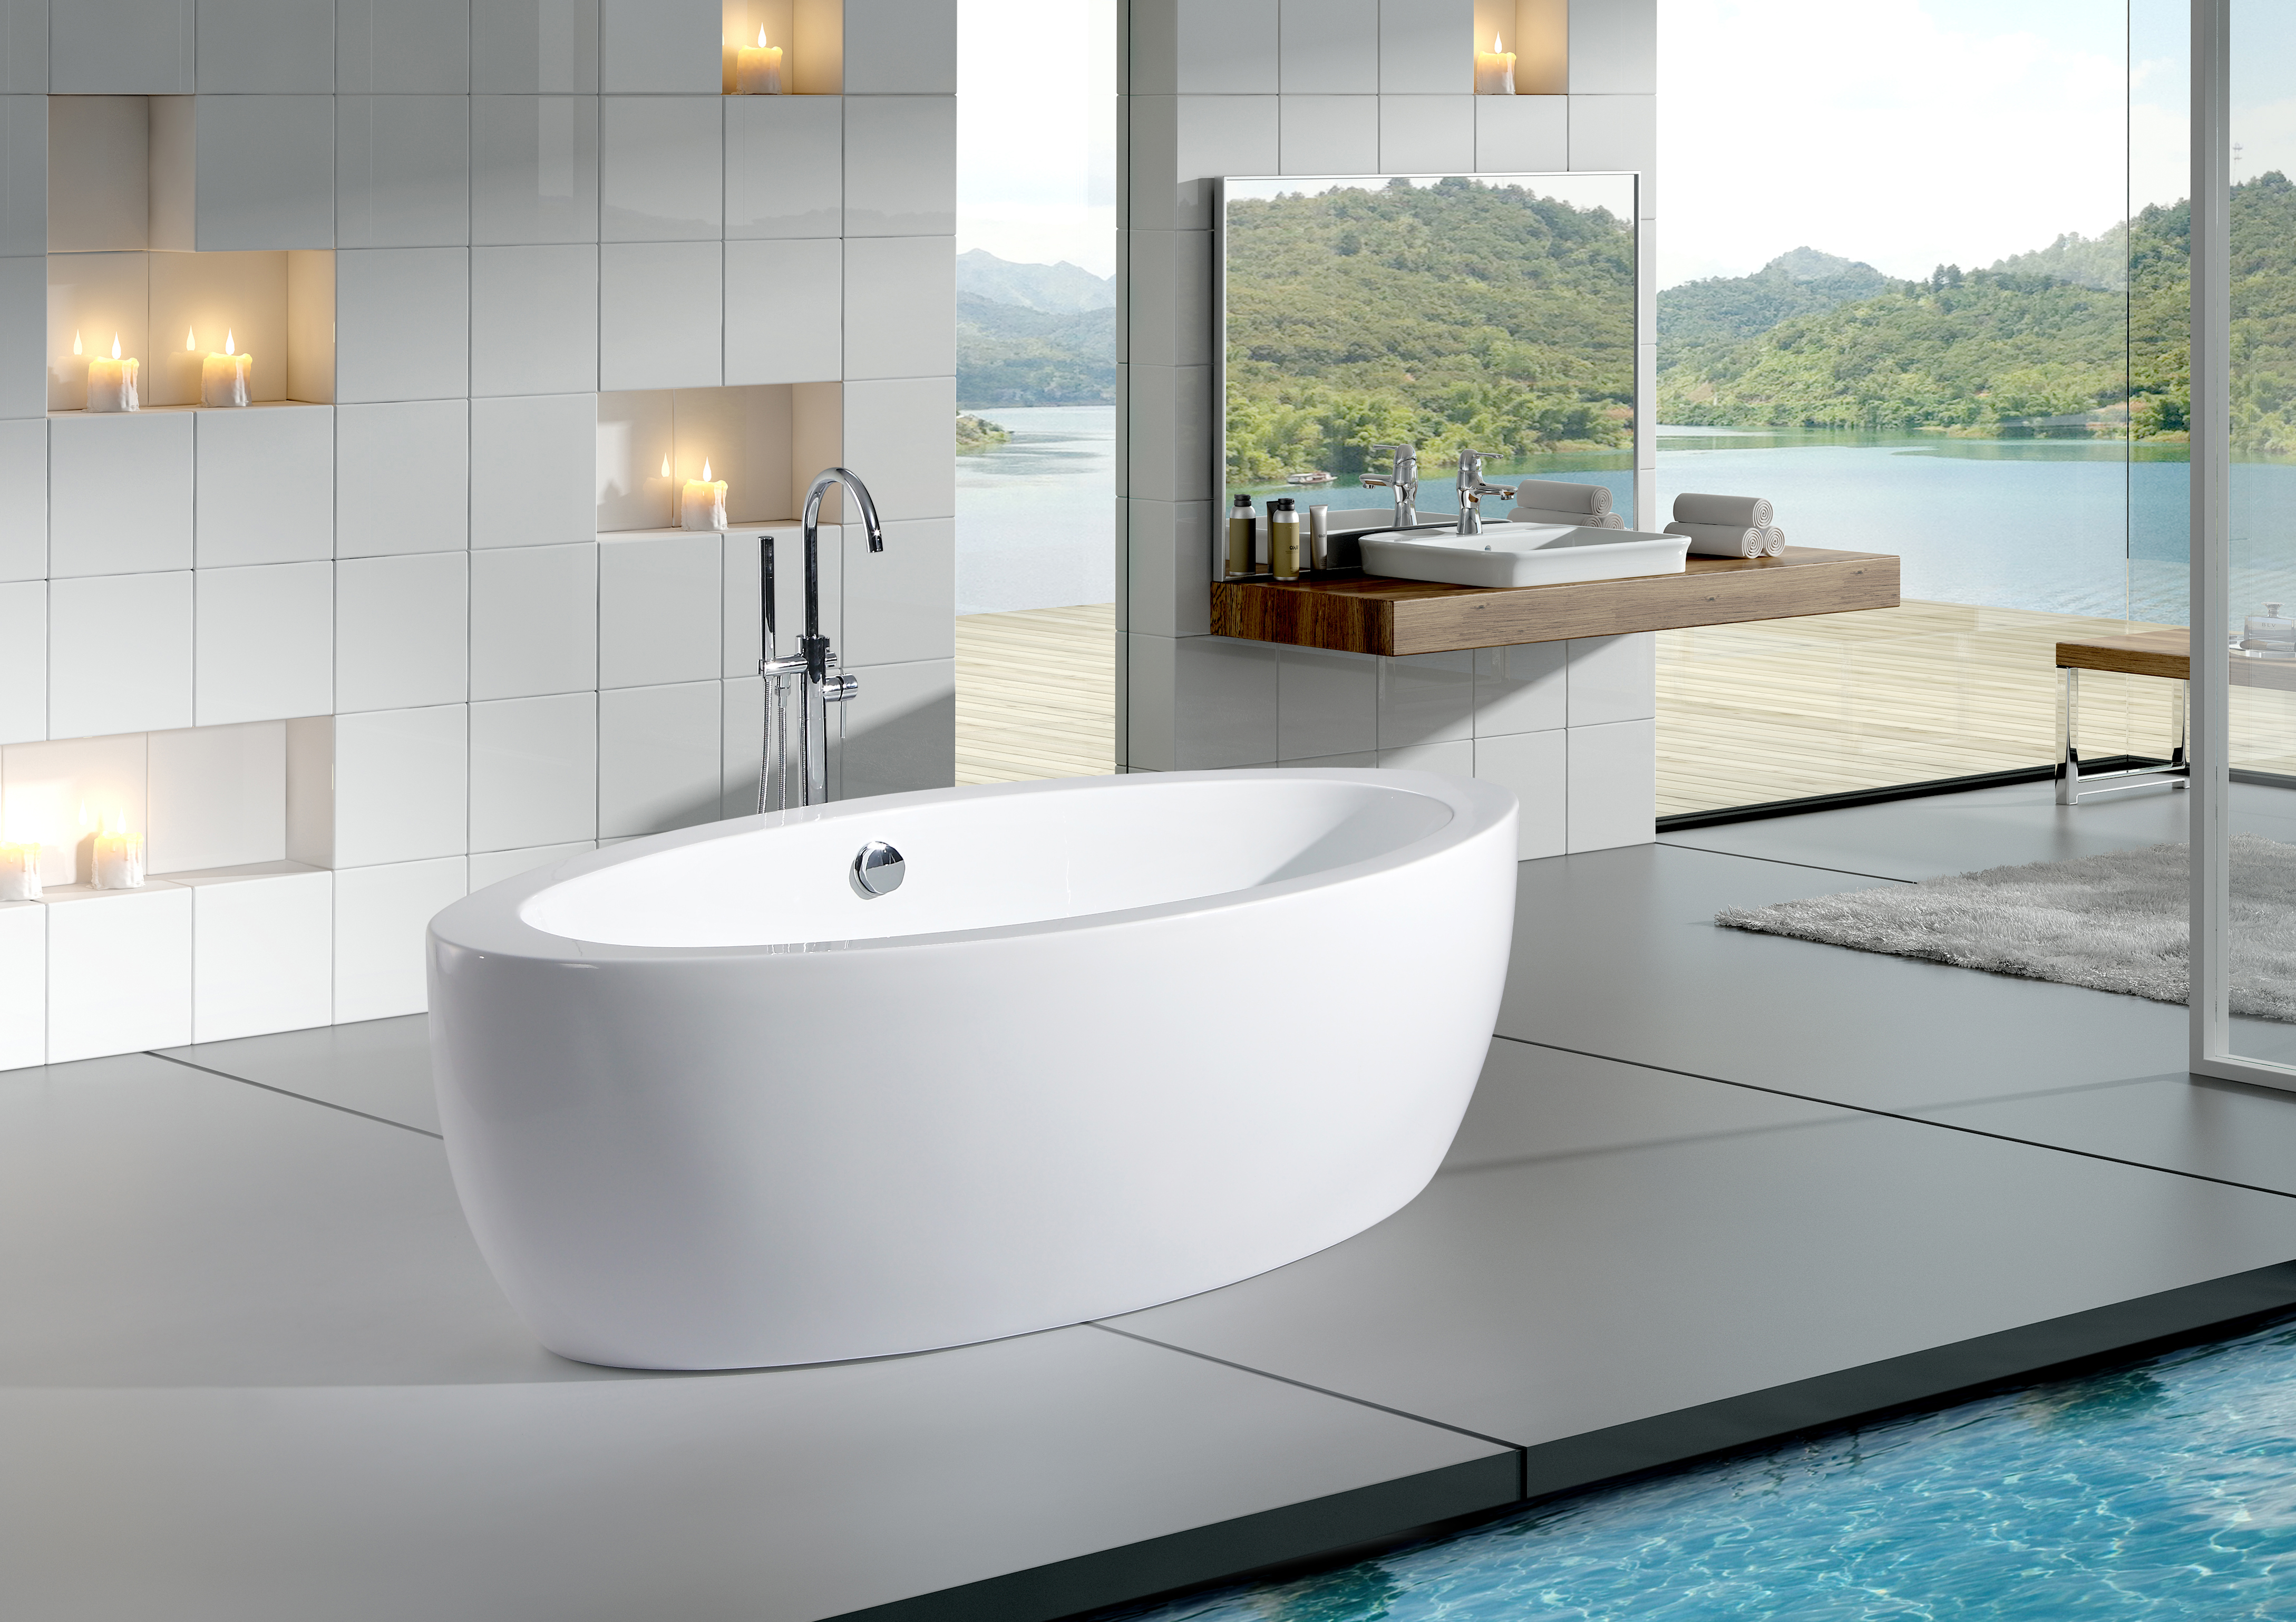 6 ways to turn your bathroom into a tropical oasis | Kingston Brass